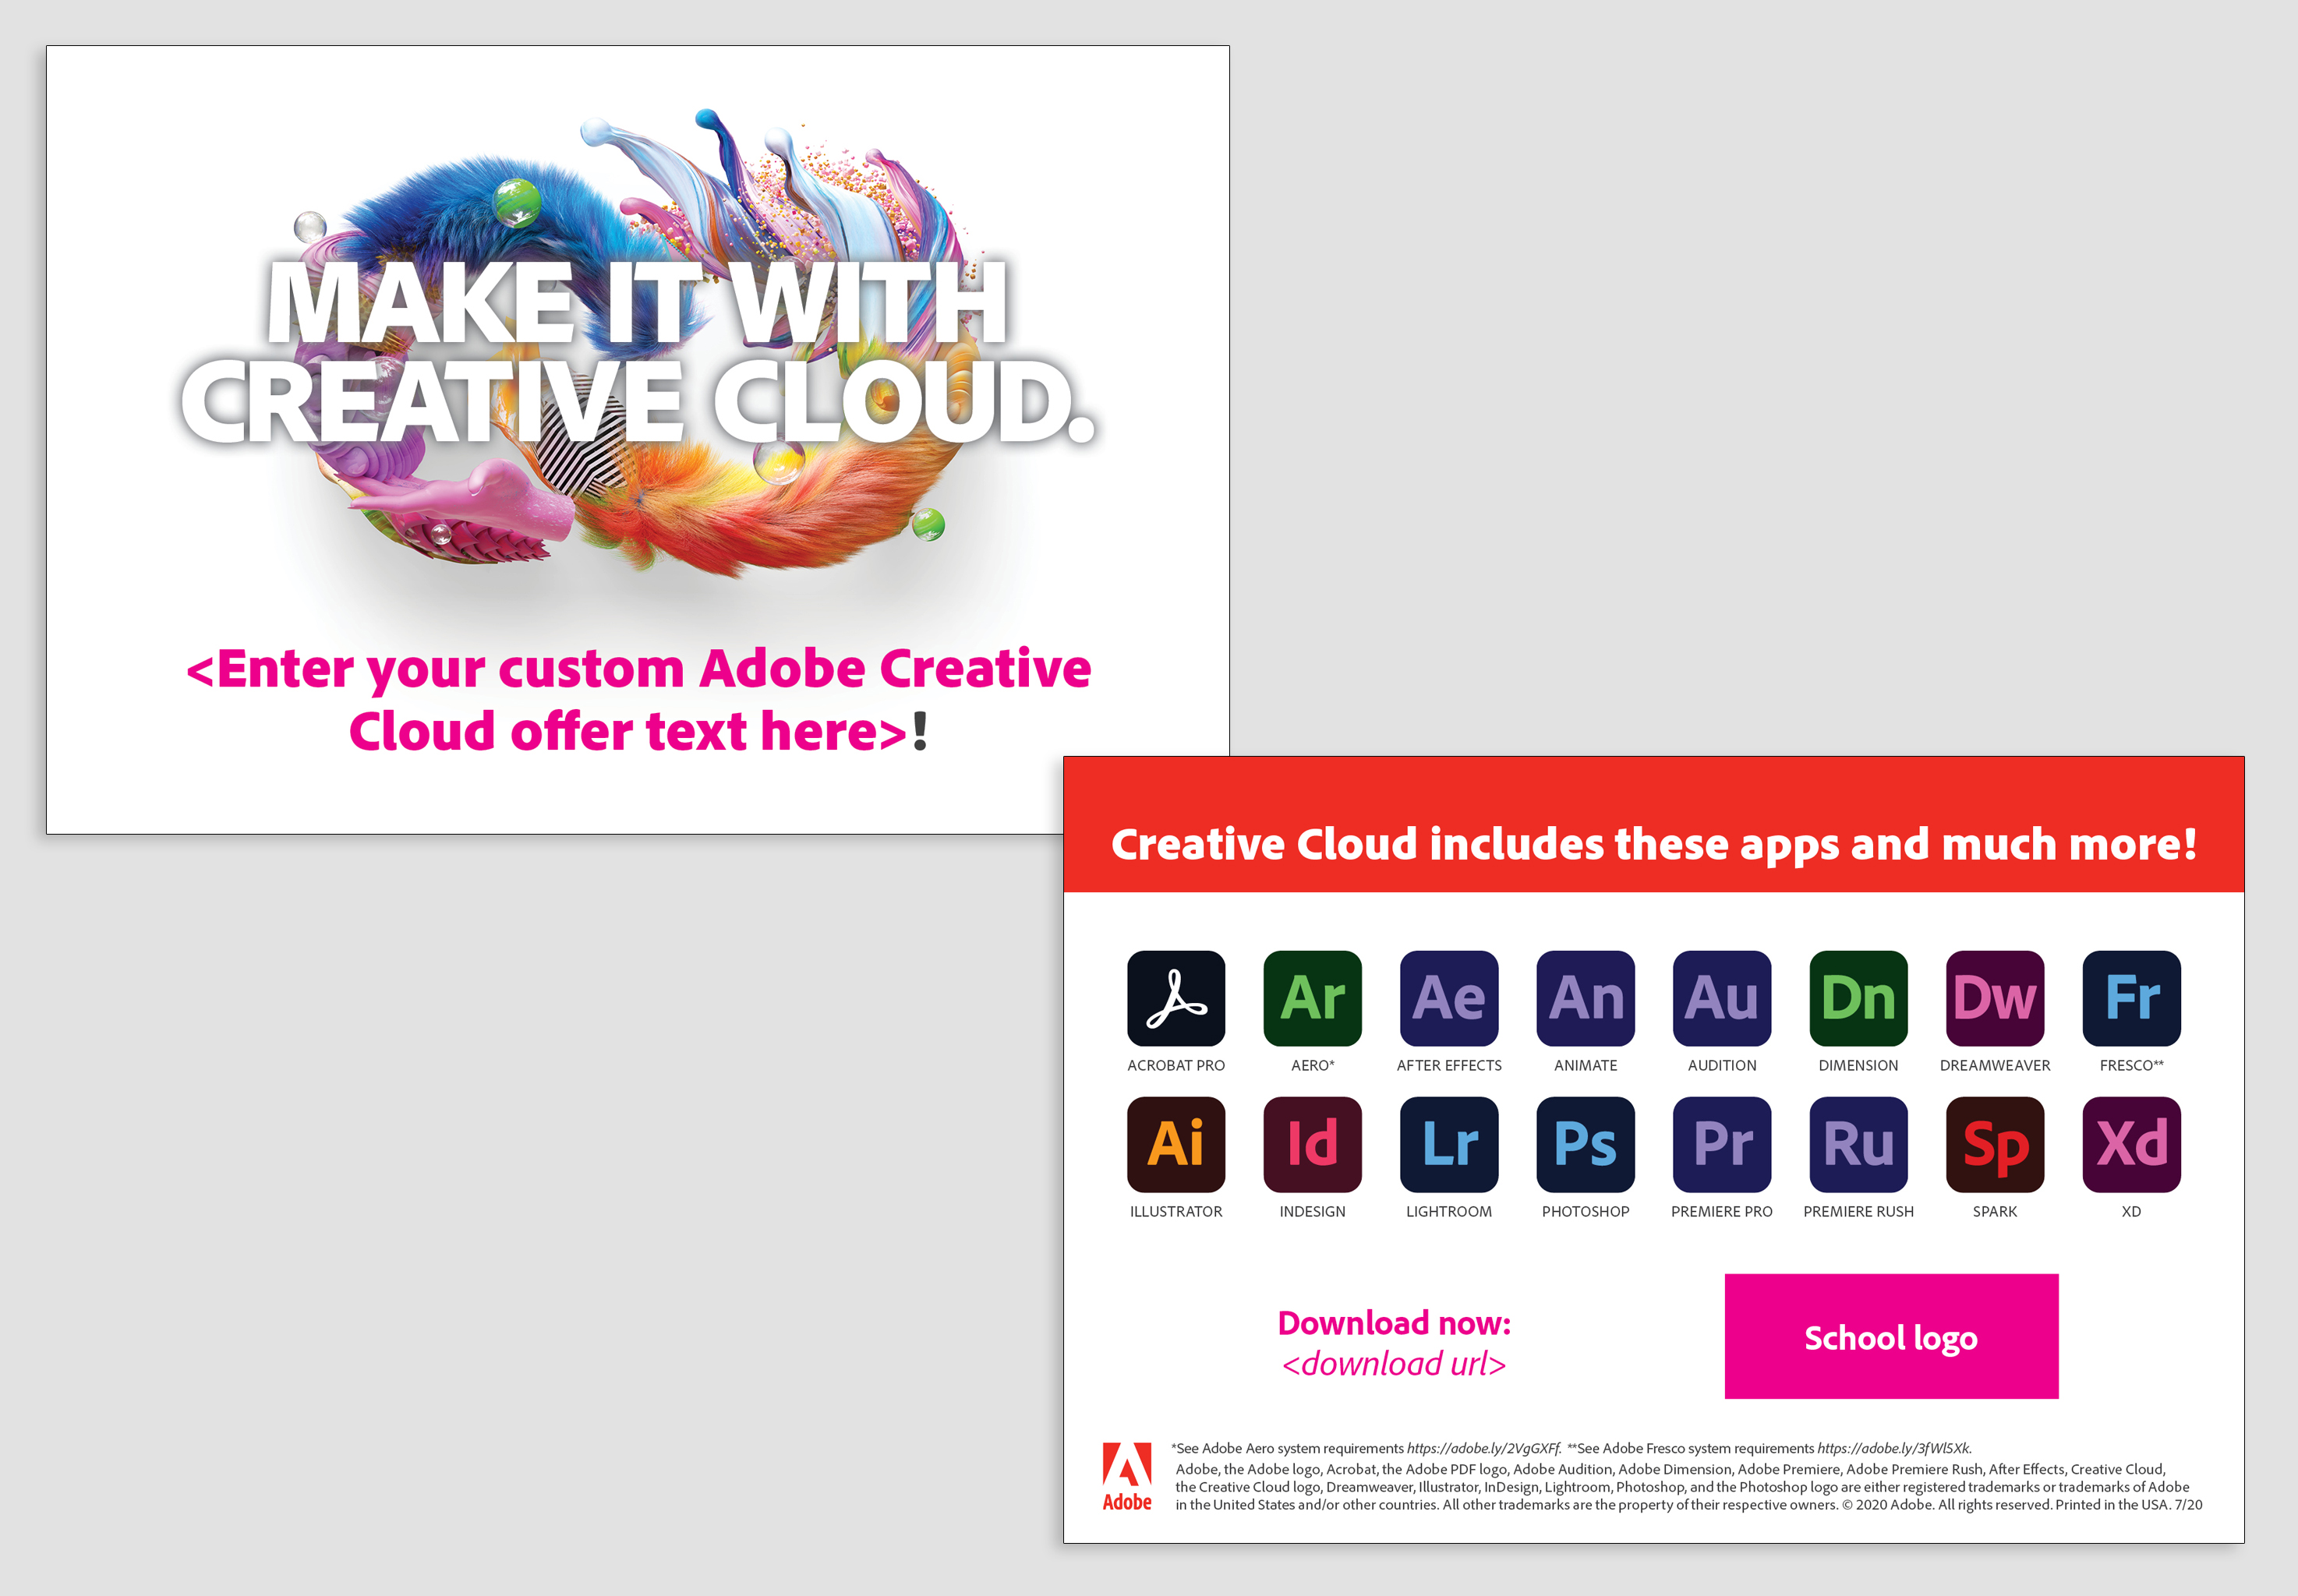 Make It With Creative Cloud custom awareness postcard